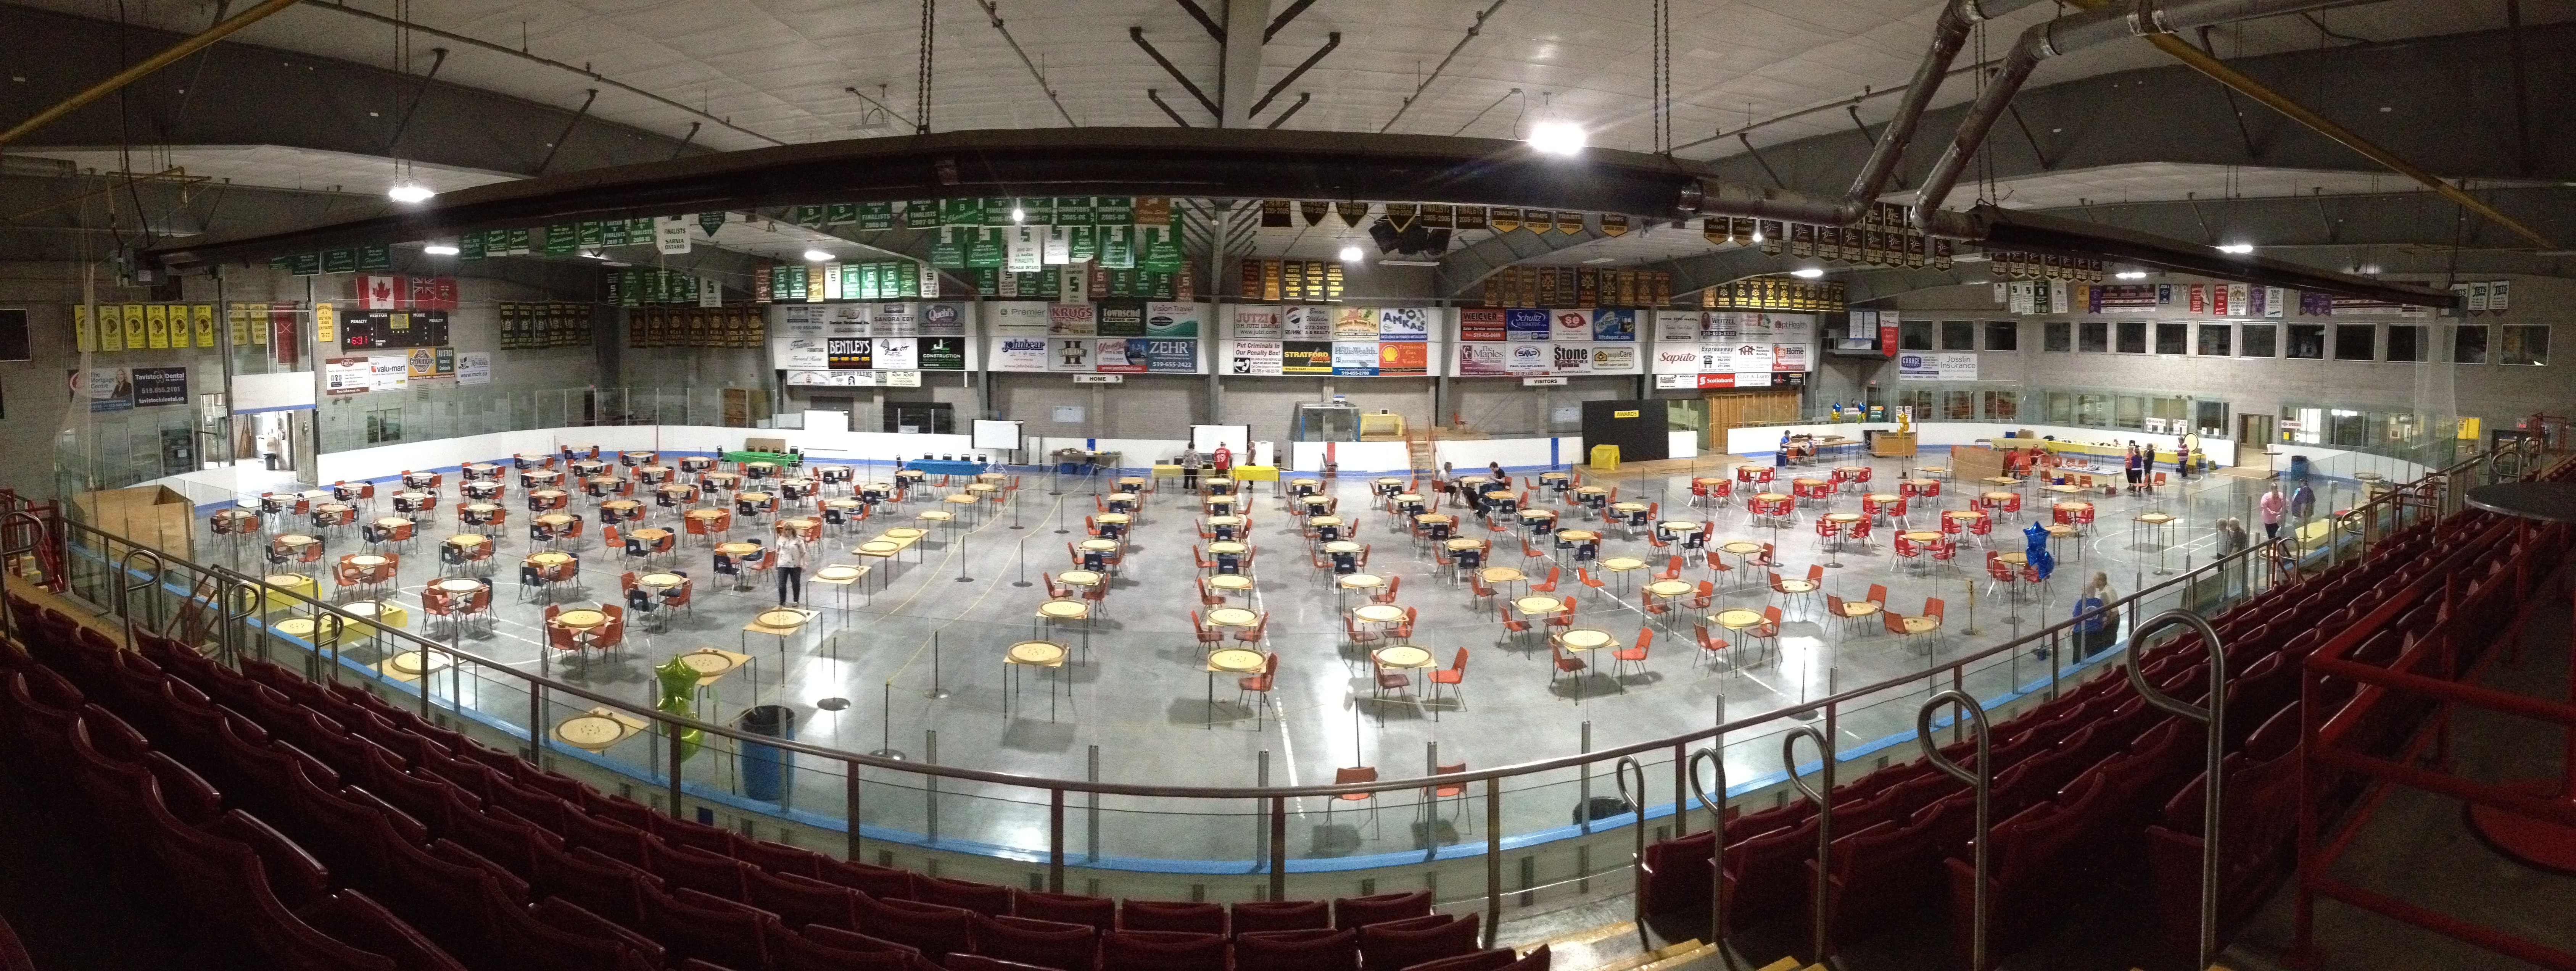 Panaramic aerial shot of the Tavistock arena floor showing over 100 tables and crokinole boards